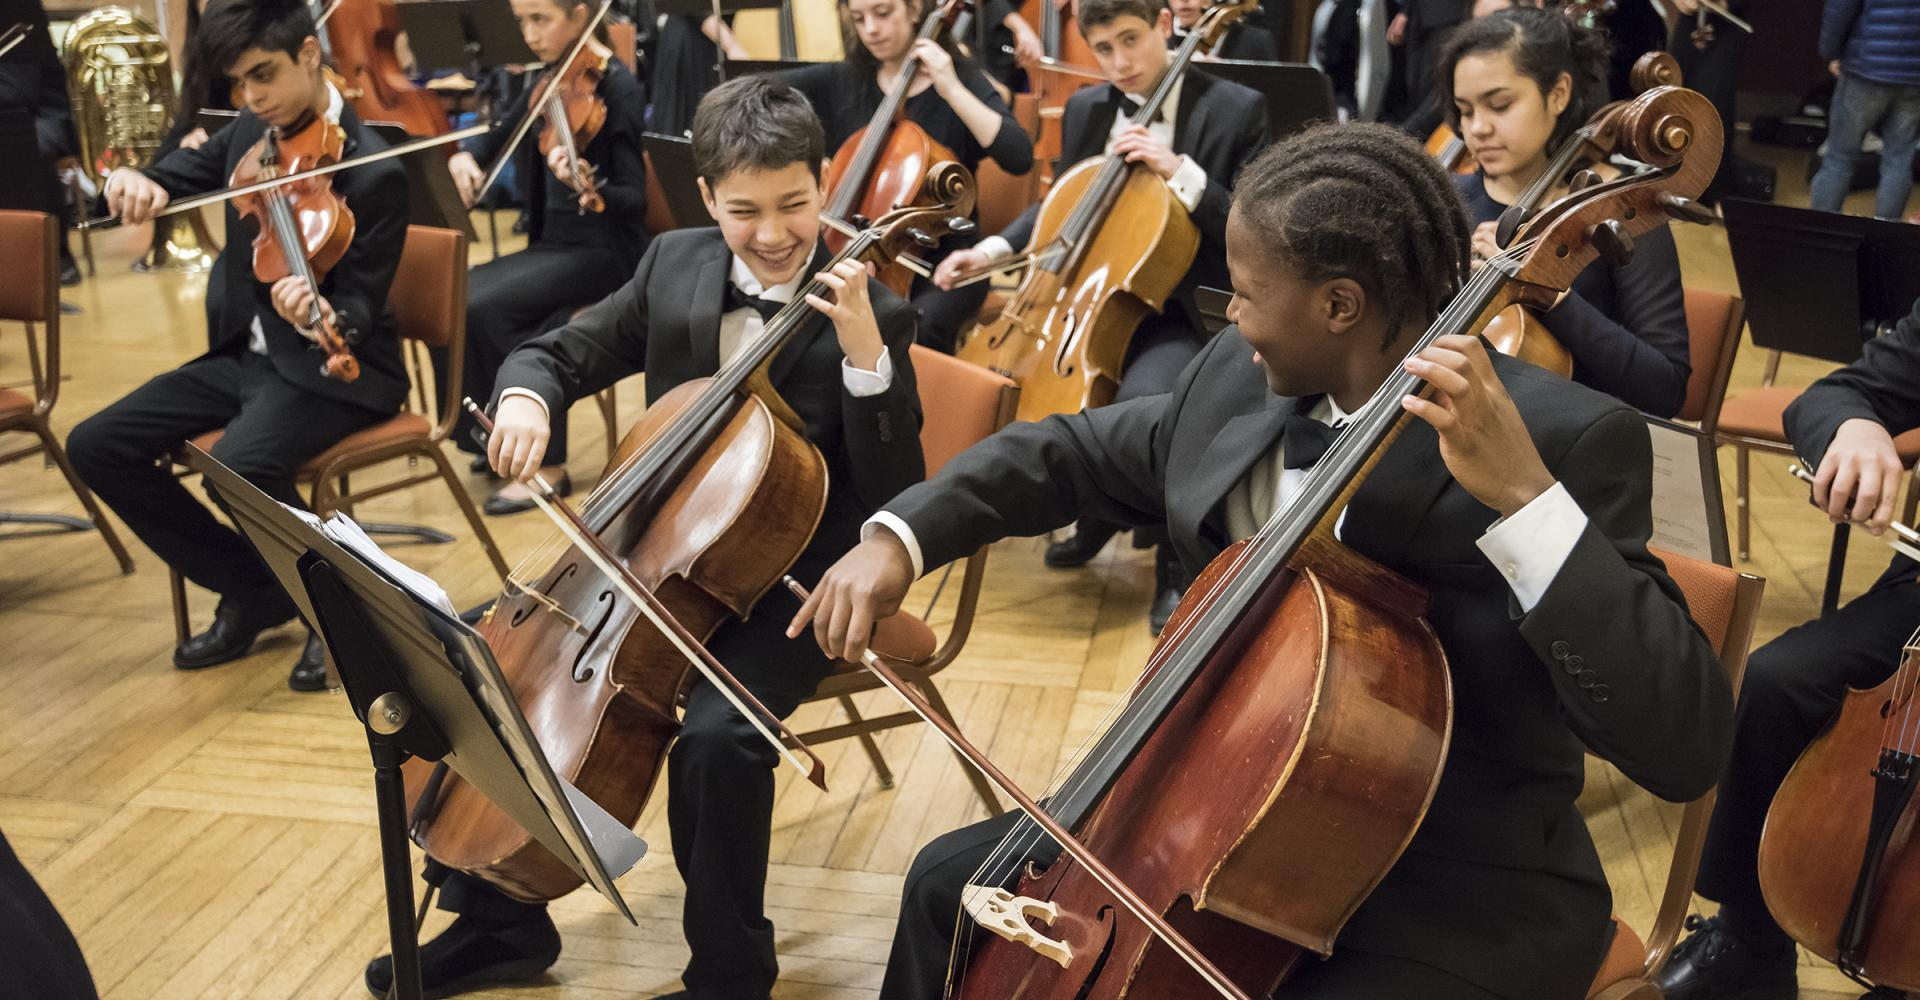 Prep Youth Symphony Cellists laughing